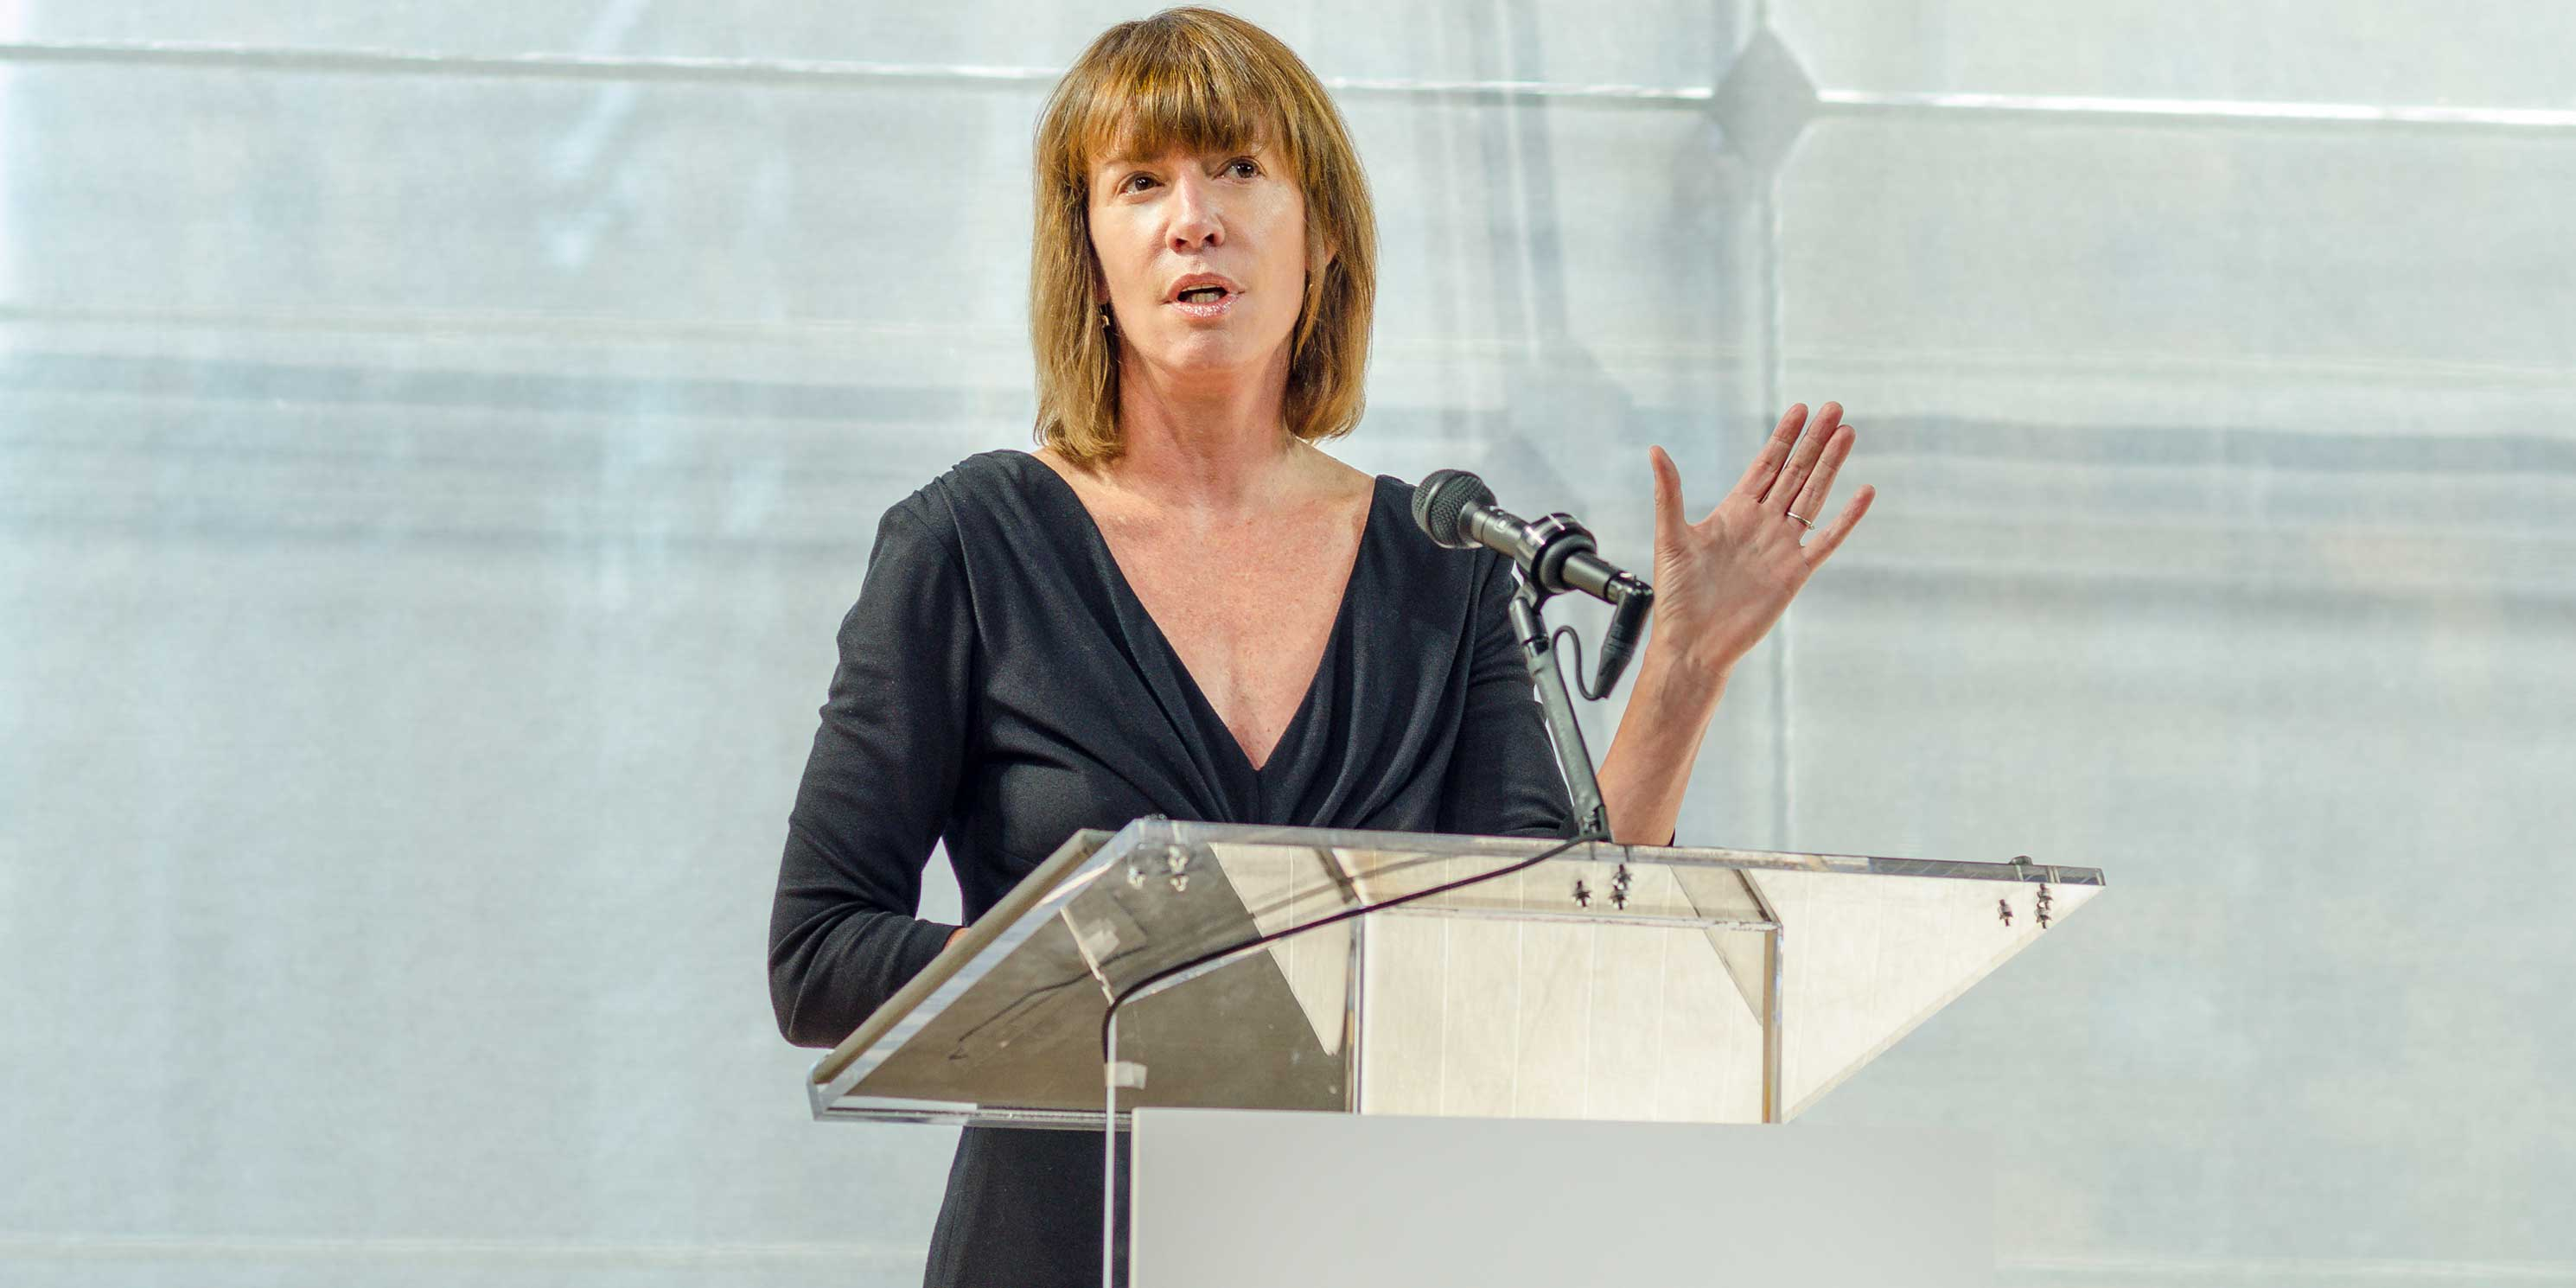 Janette Sadik-Khan speaking at the 2013 Summit